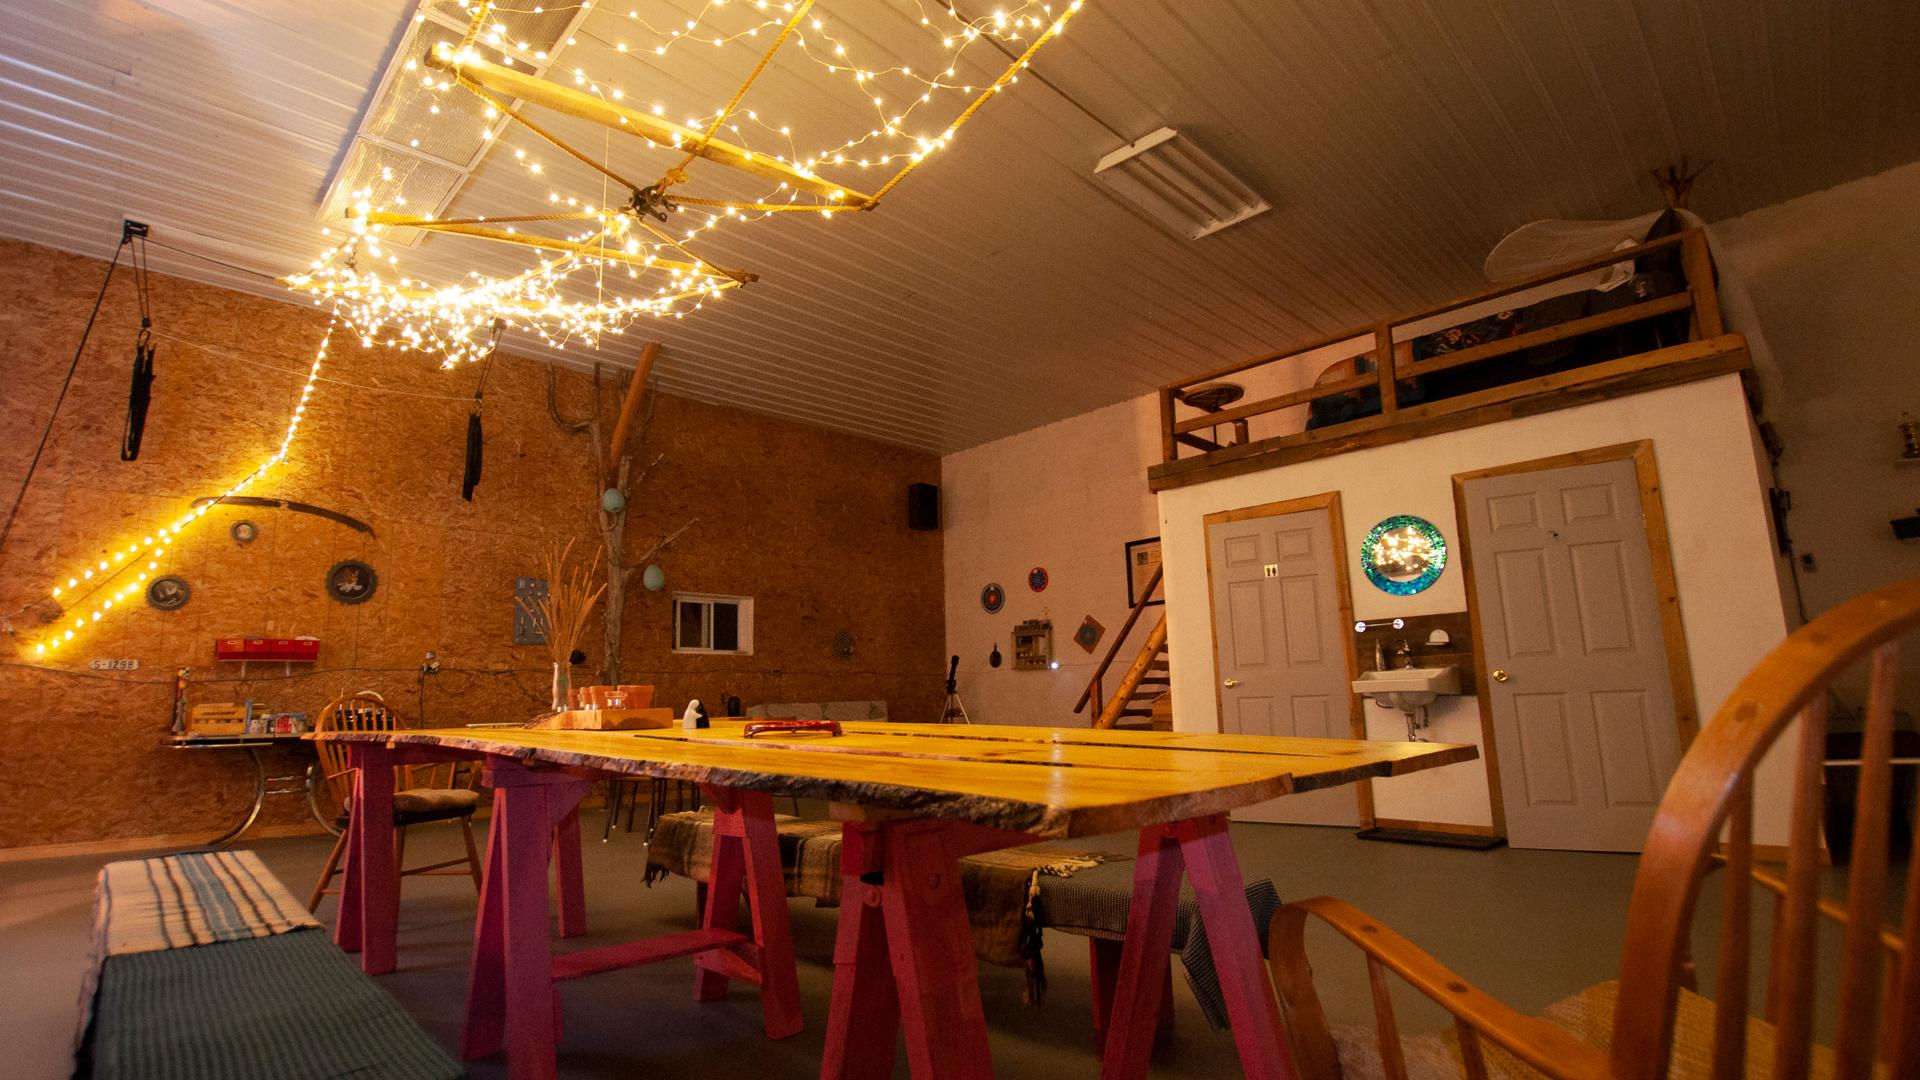 Ontario's coolest cabins to rent | Twinkle lights hang overhead in the Freija Forest Loft